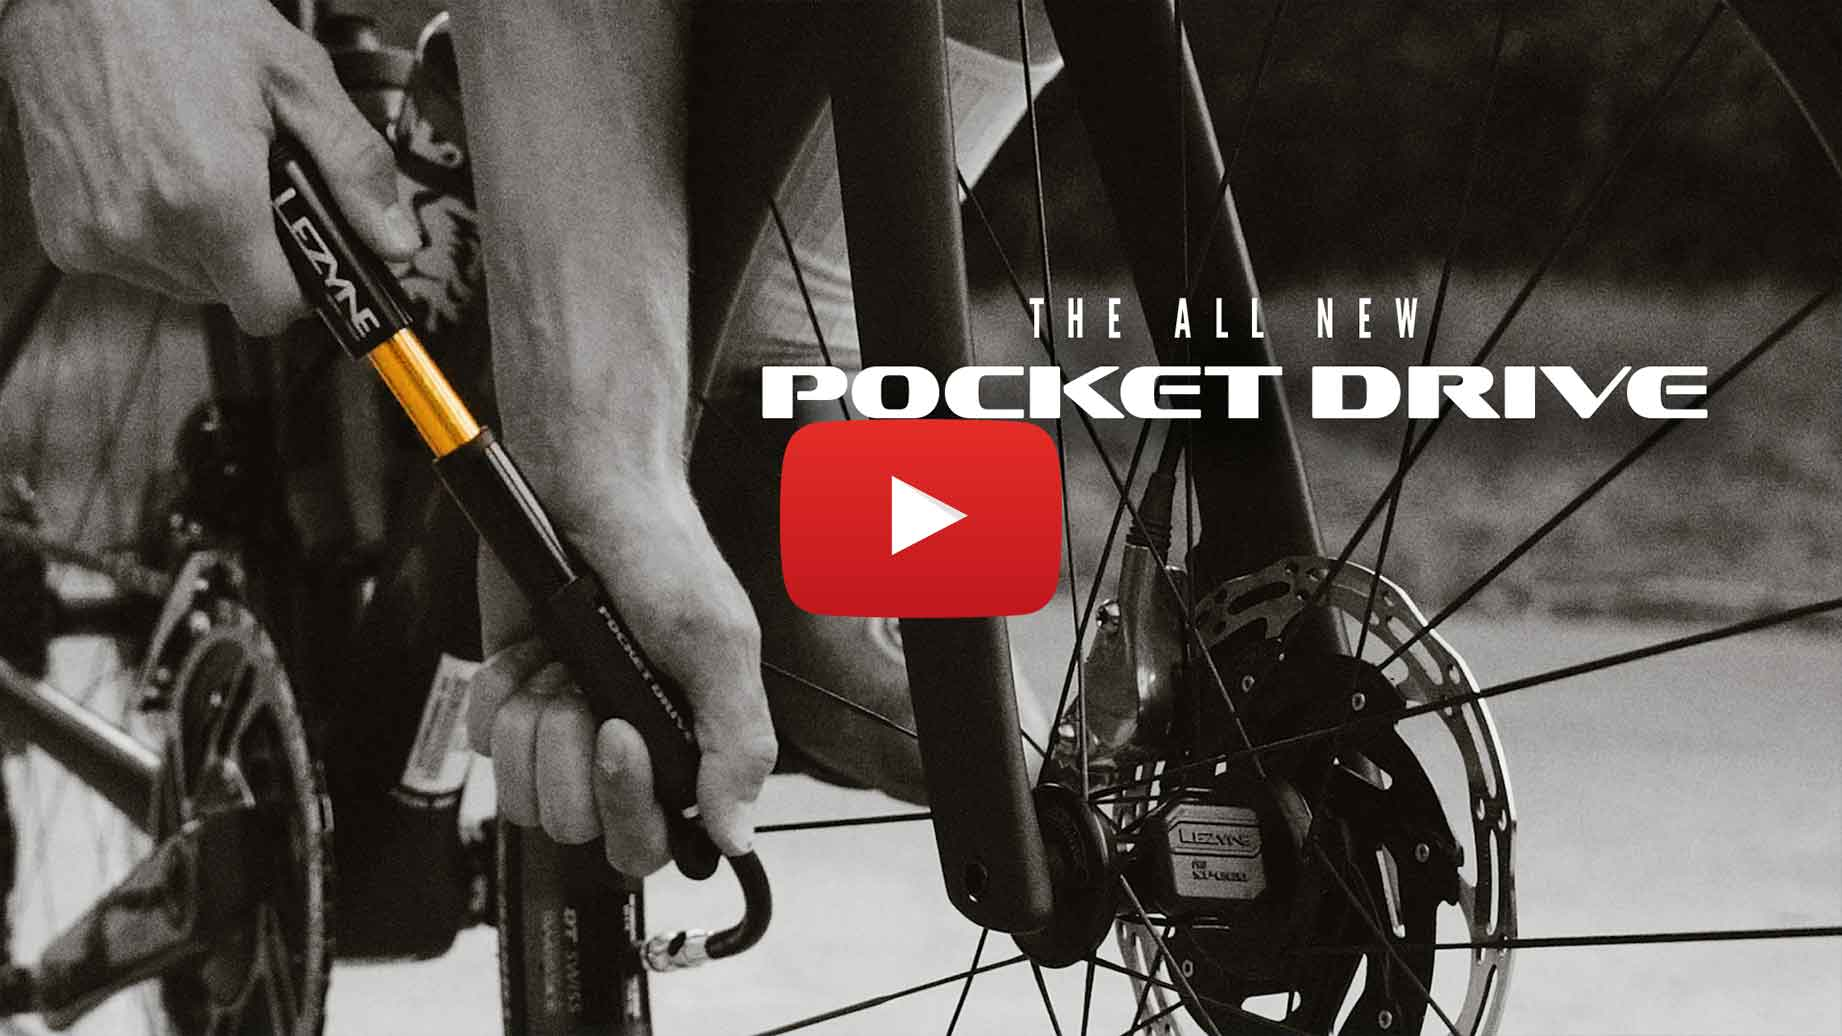 Pocket Drive Video